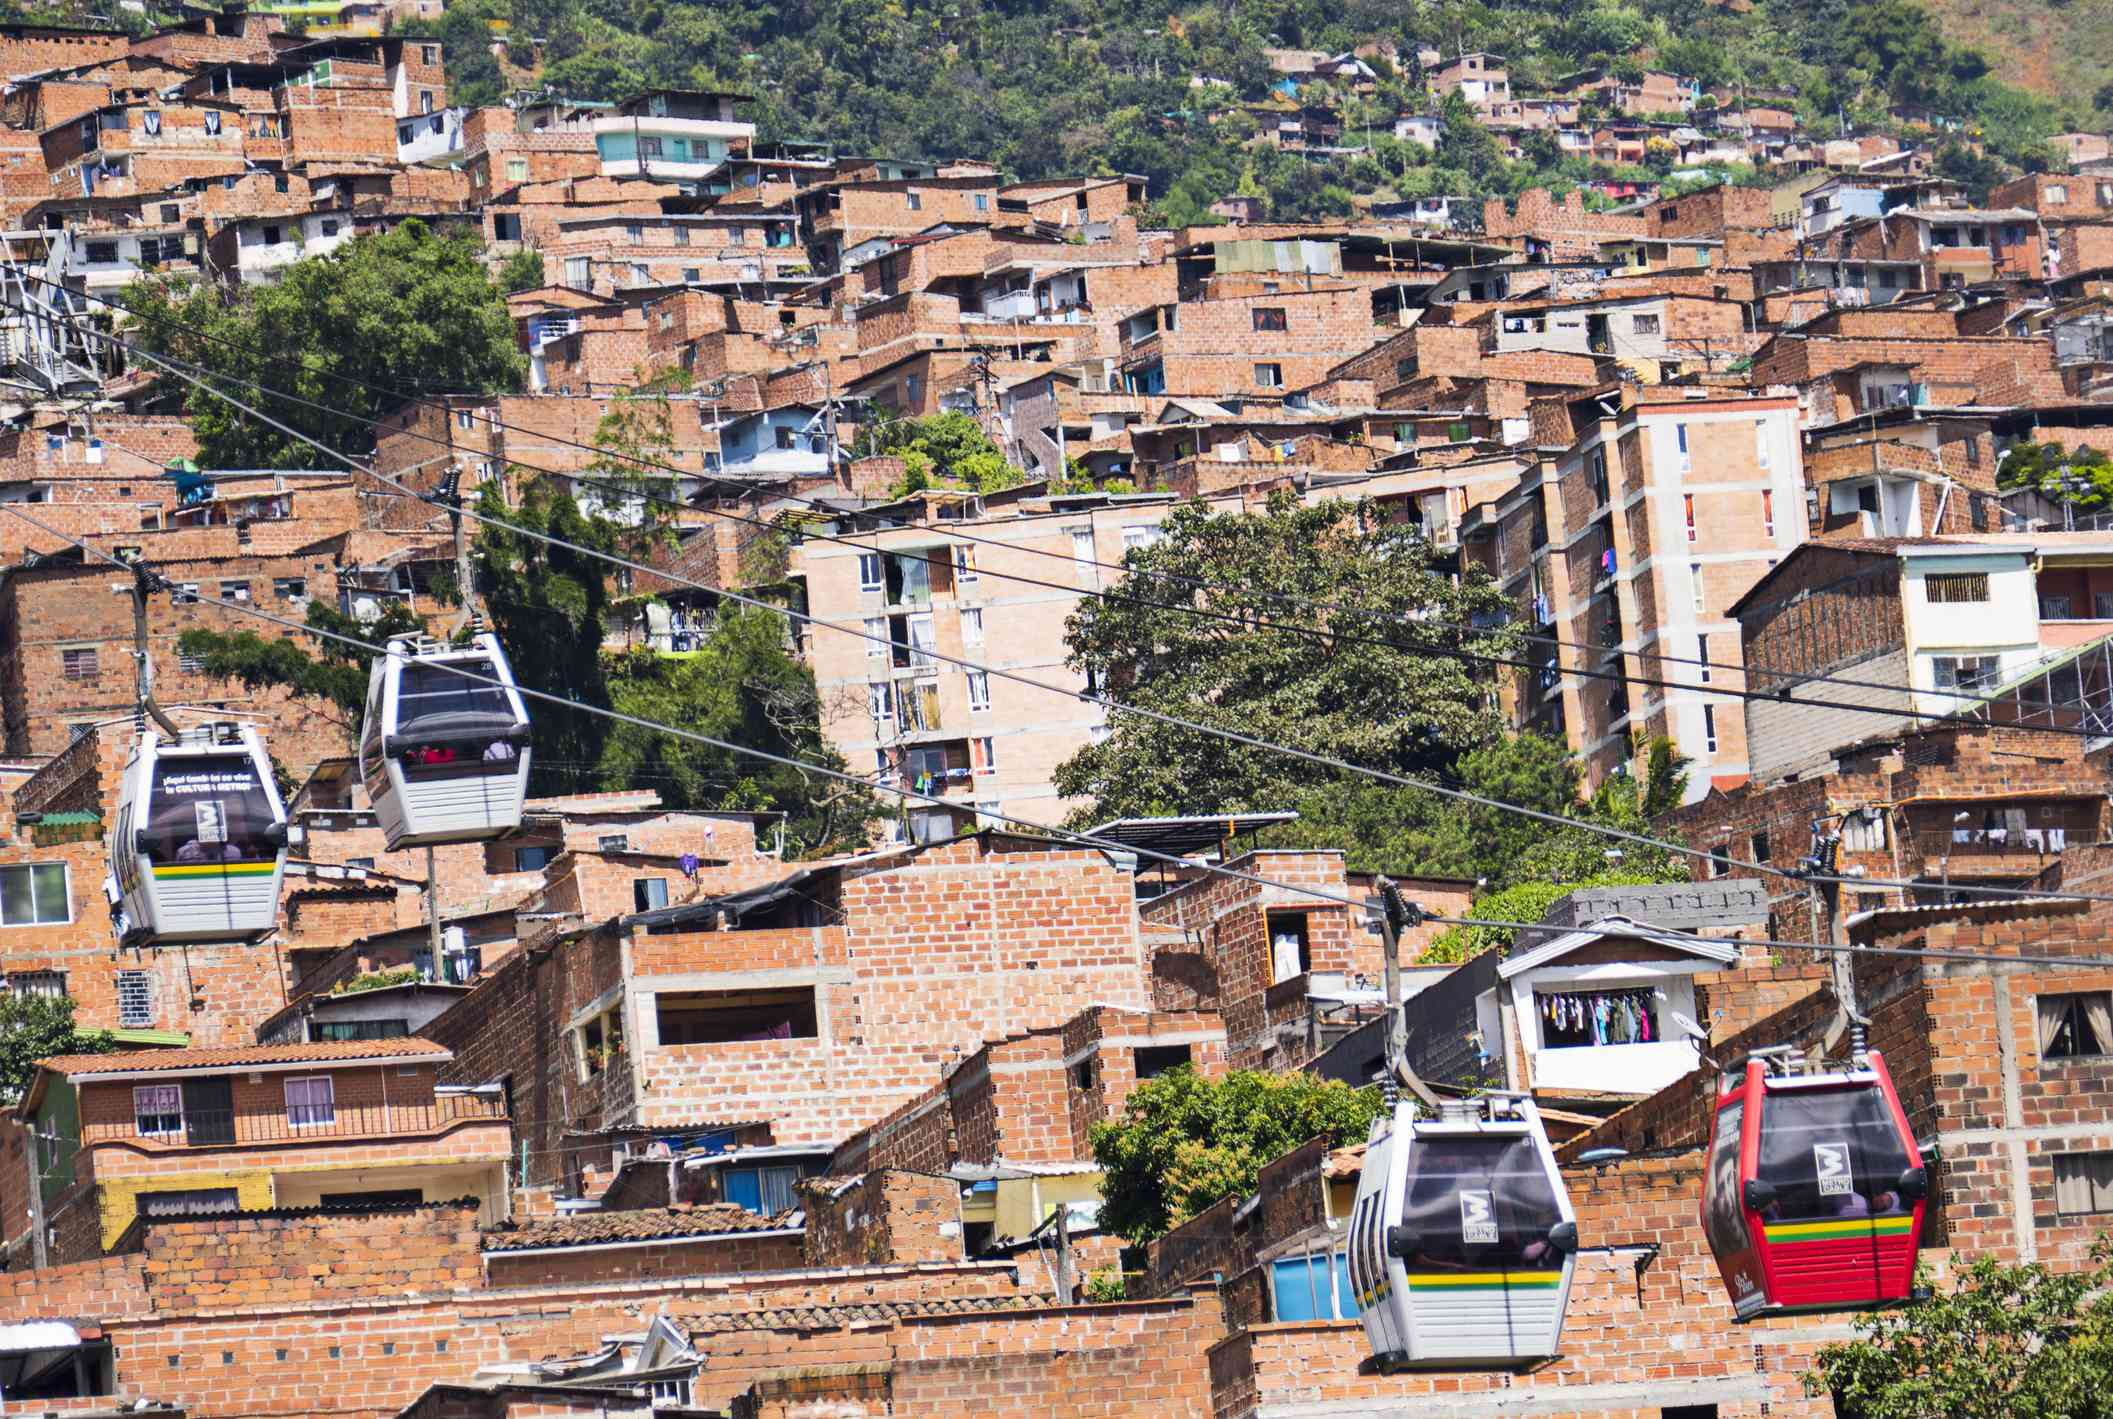 Metro Cable Cars in Medellin Colombia that run from the mountains to the city